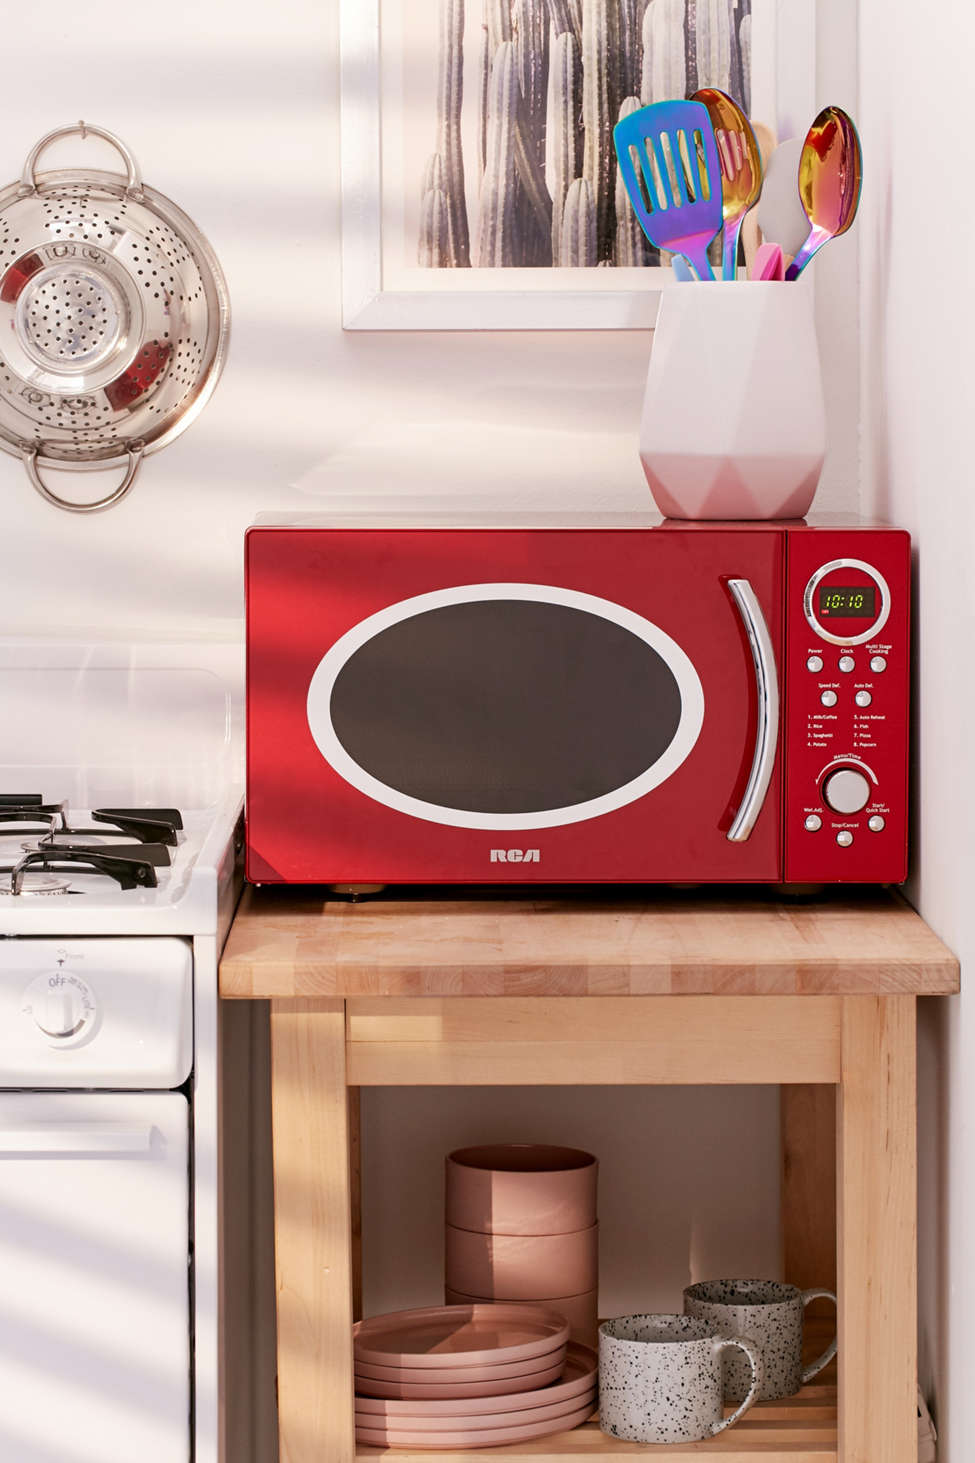 Slide View: 1: RCA Retro Red Microwave